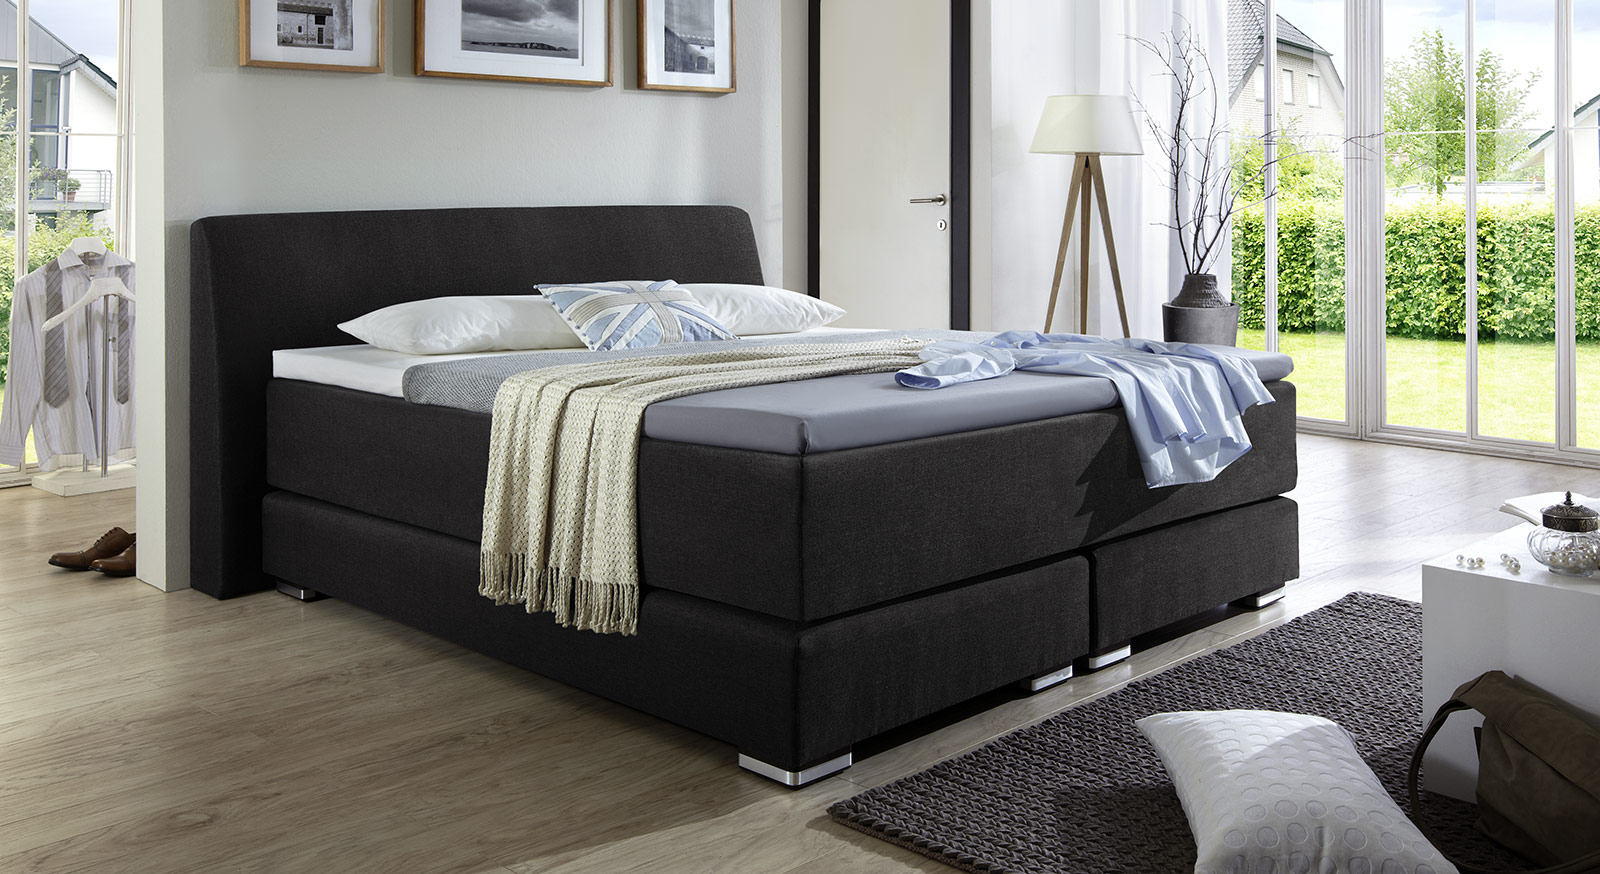 boxspringbetten im test und vergleich 2018 auf. Black Bedroom Furniture Sets. Home Design Ideas